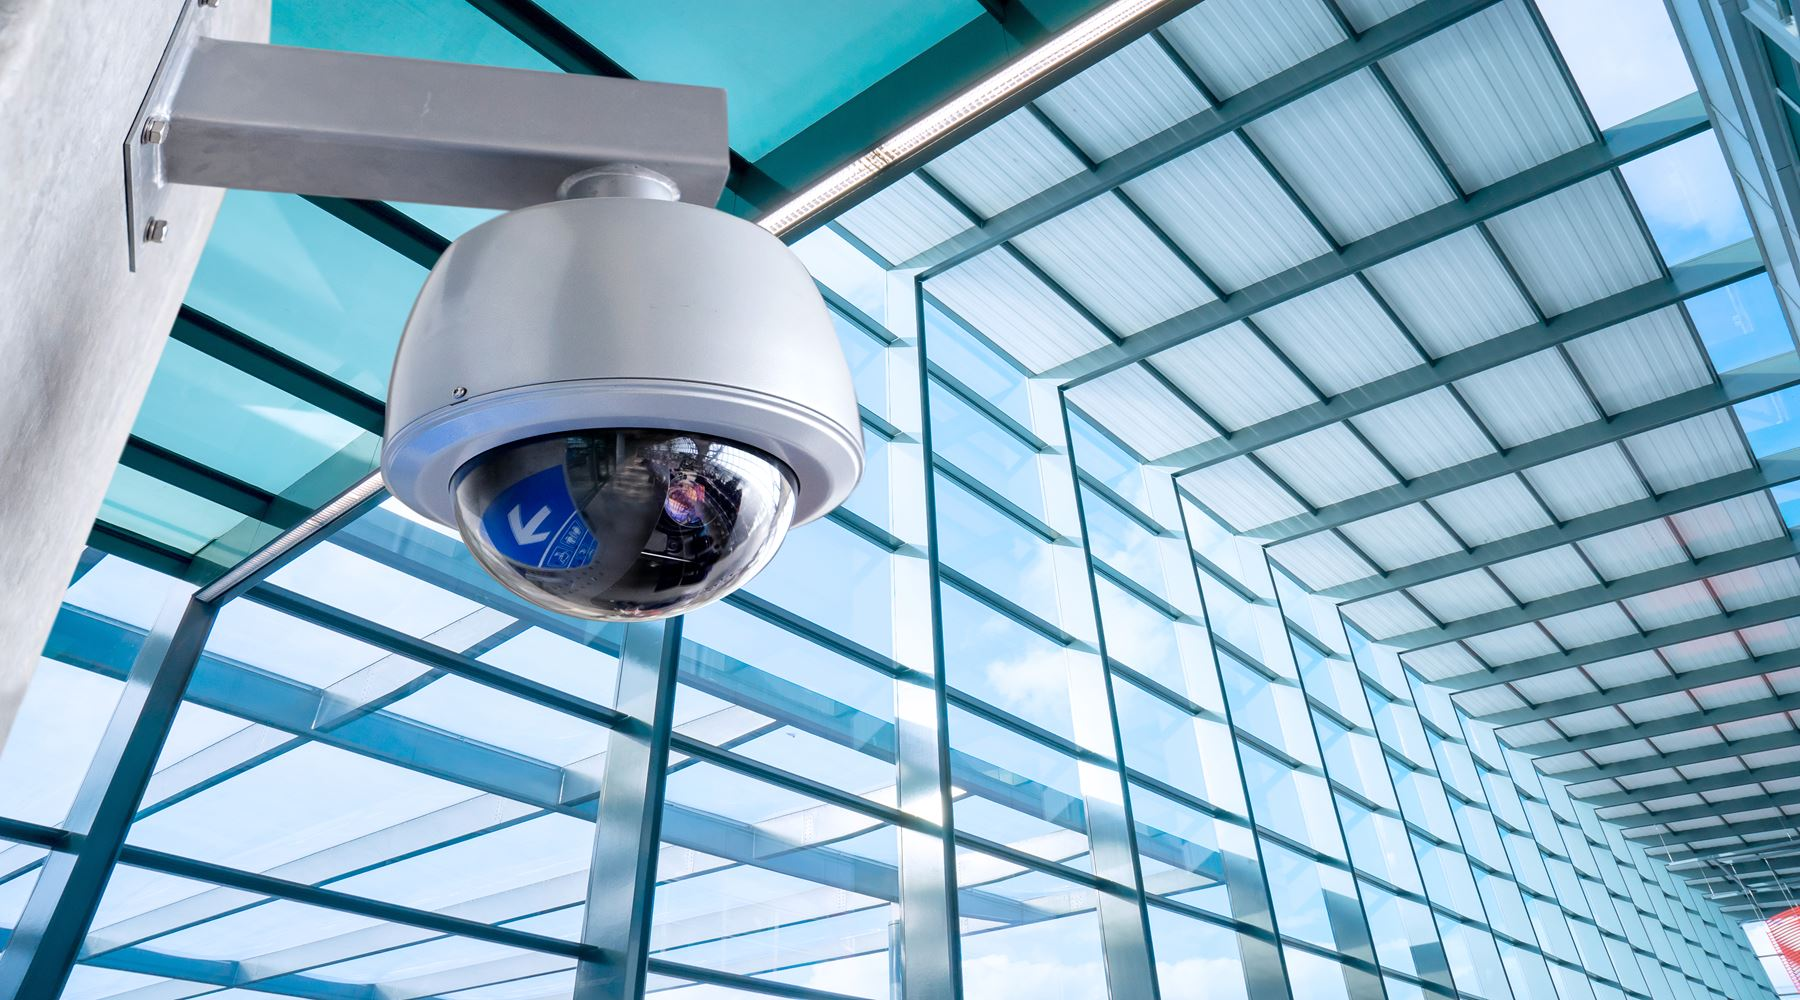 A new approach to building security systems